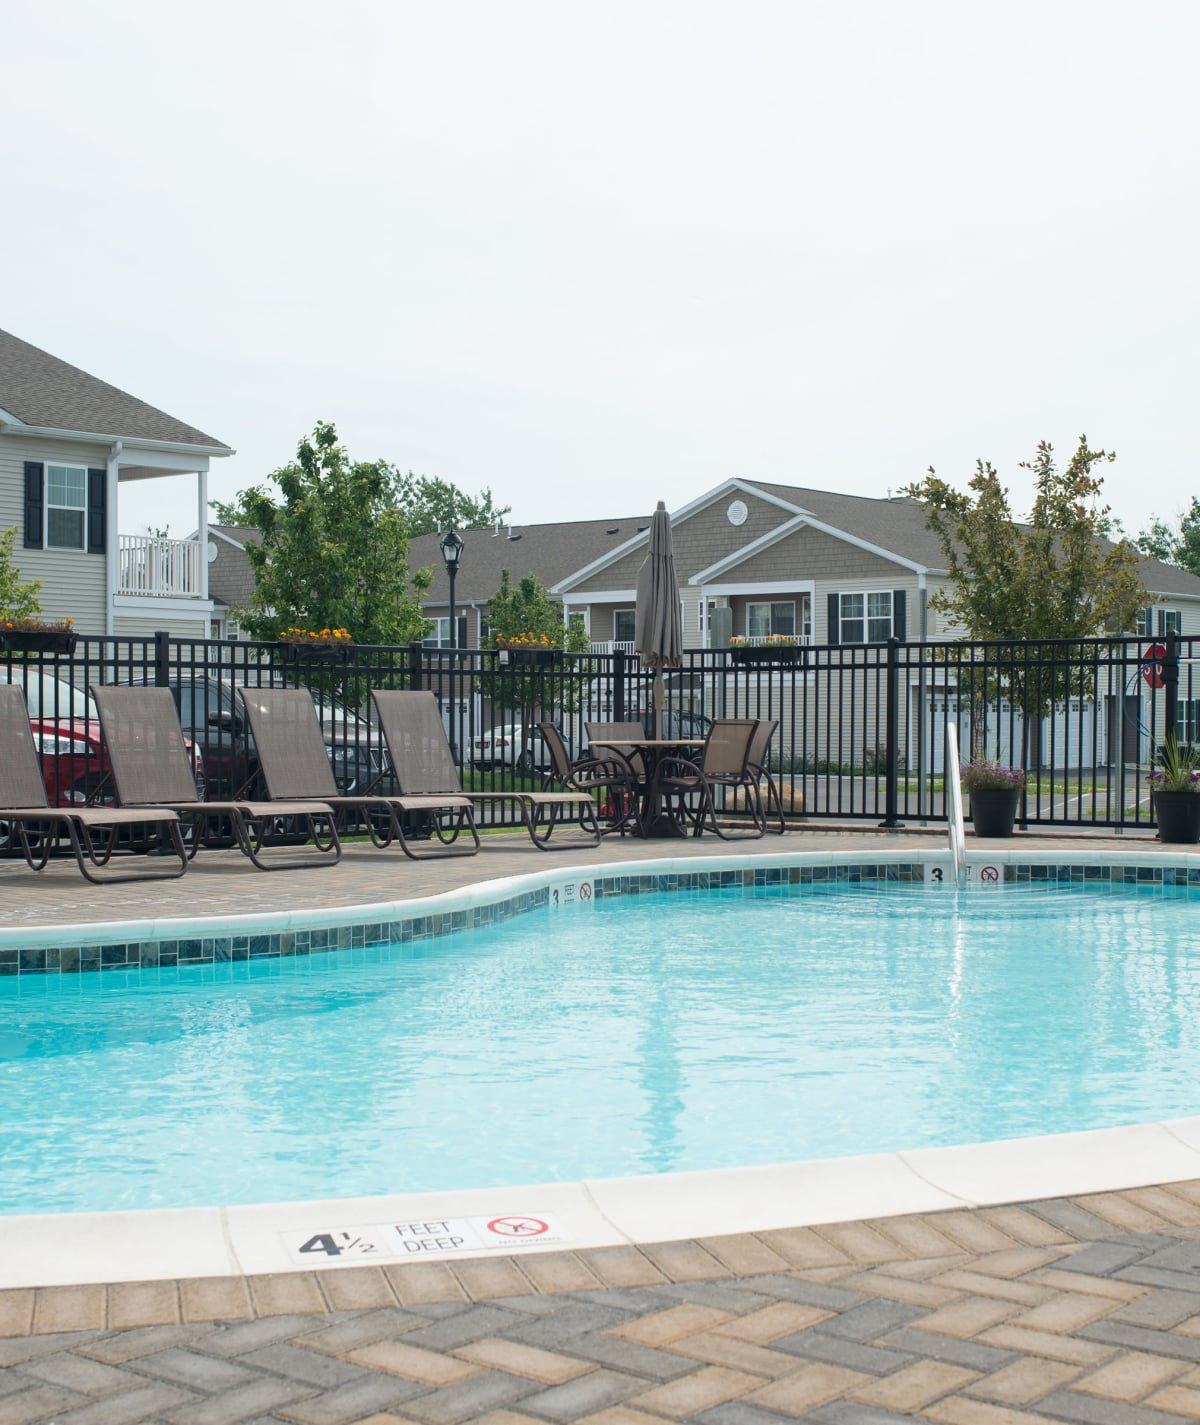 Apartments at Hampton Run in Glenville